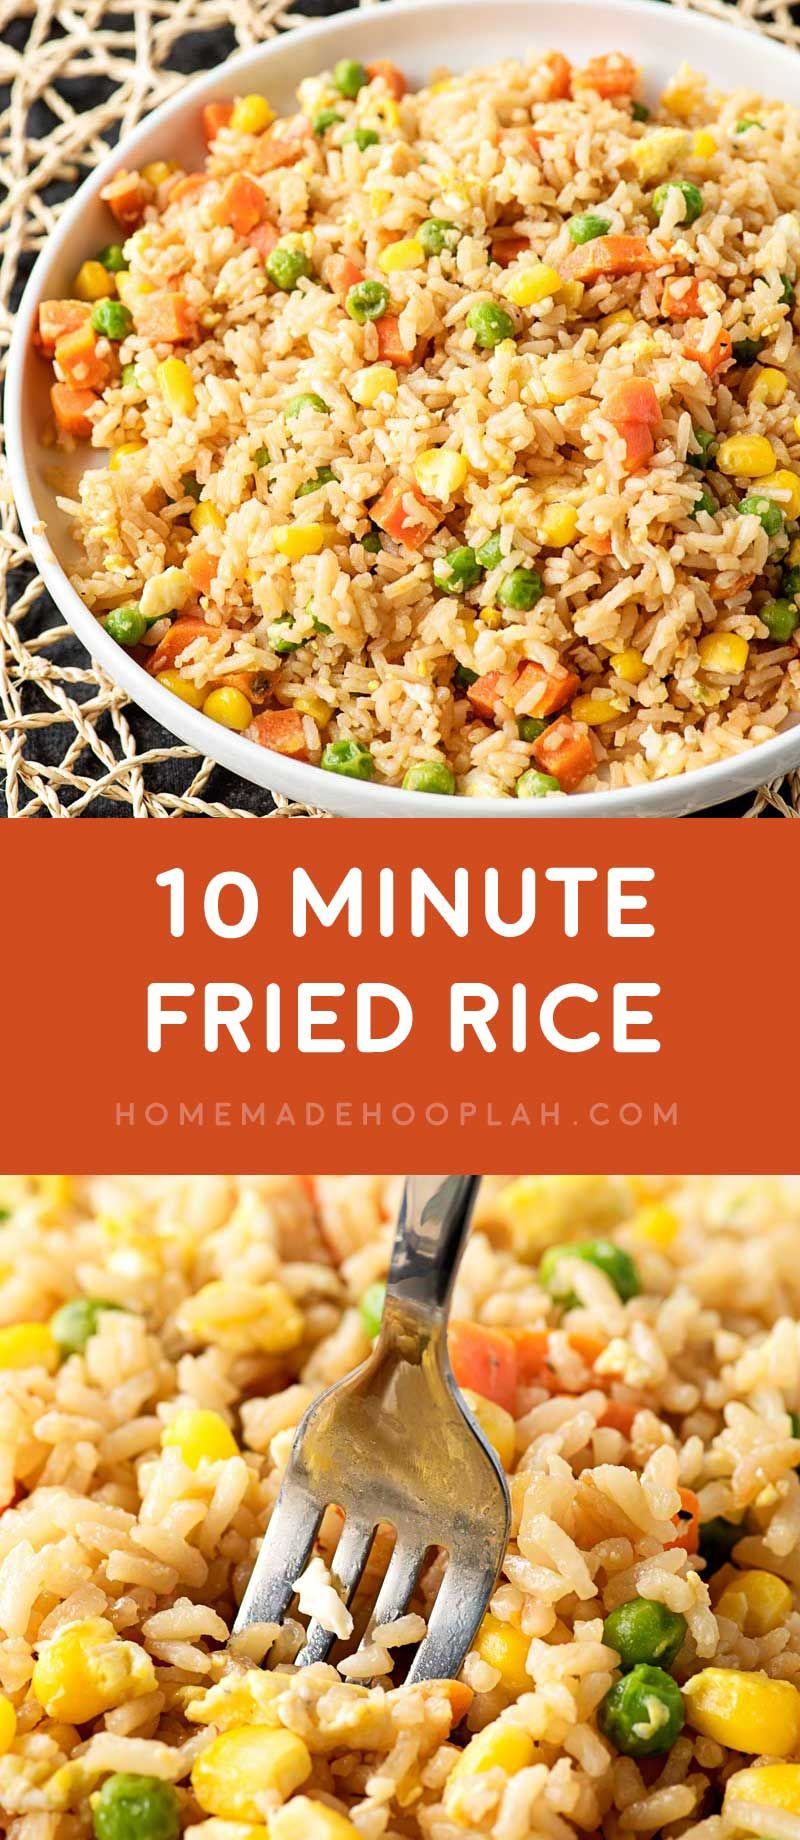 10 minute fried rice need a new go to side dish for busy weeknights 10 minute fried rice need a new go to side dish for busy weeknights making fried rice at home is always a great staple and this easy recipe comes ccuart Gallery